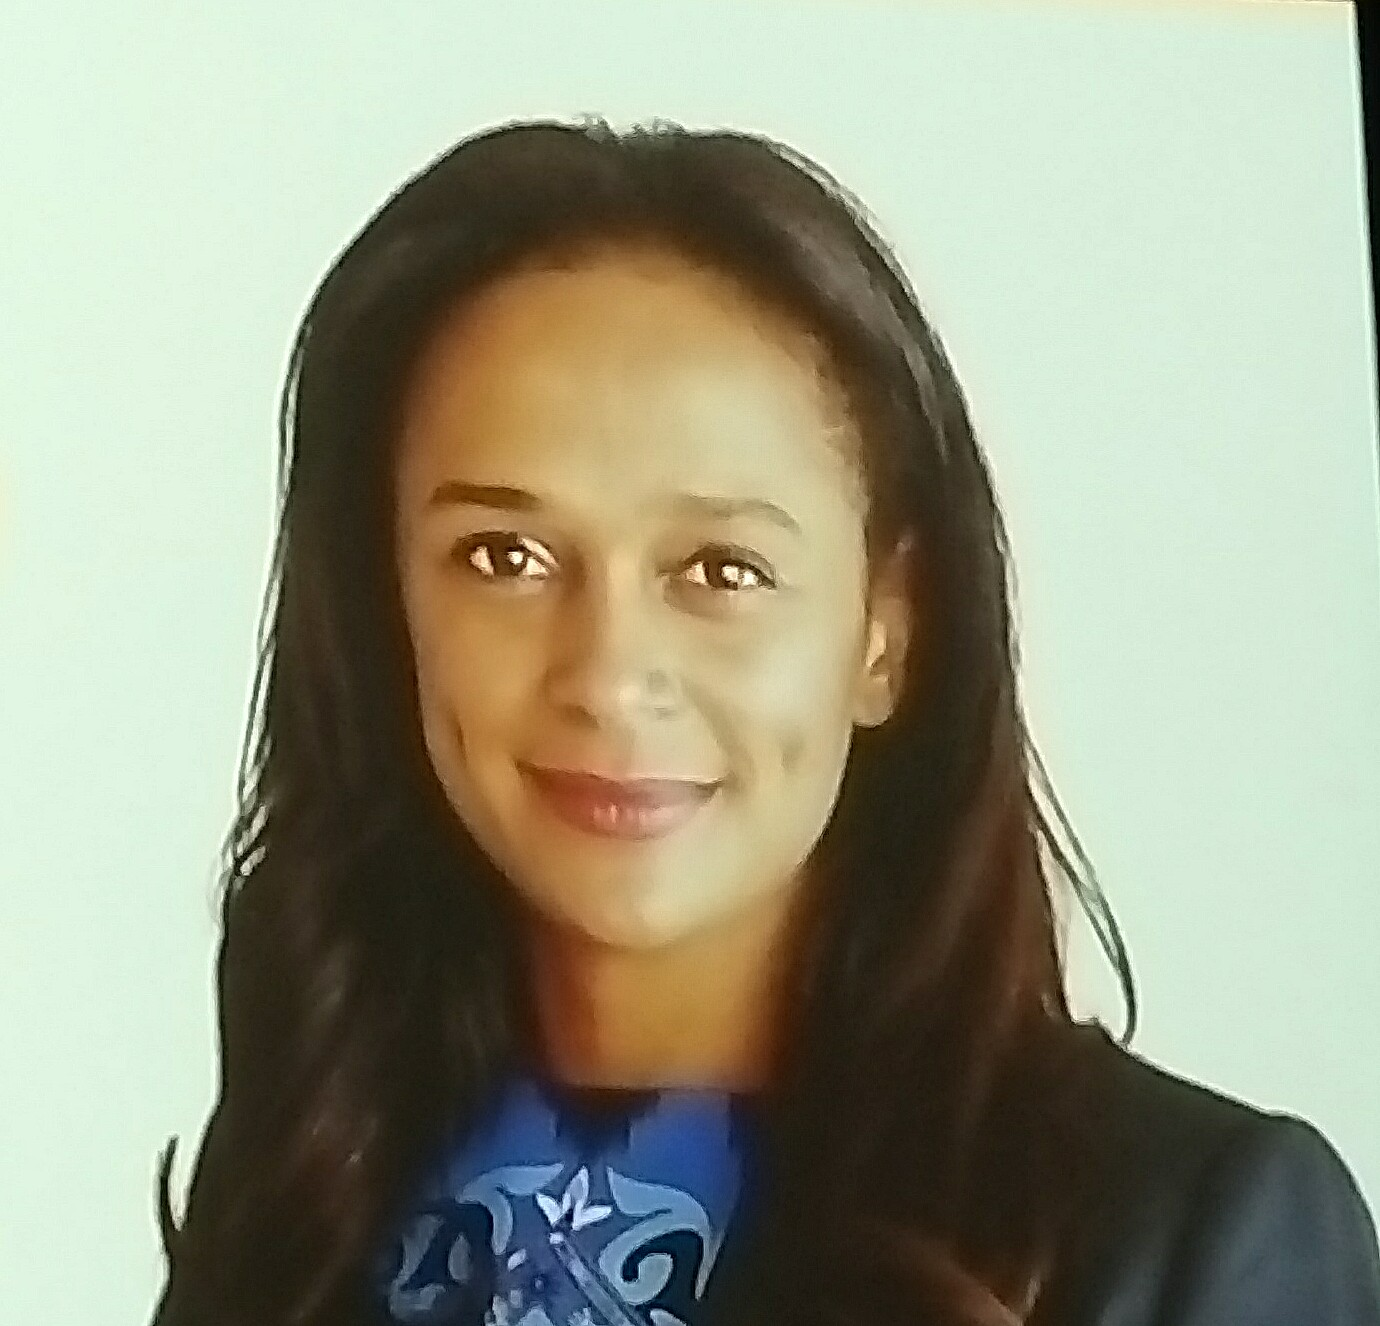 Isabel dos Santos outlined her plans for Sonangol at an event in London.